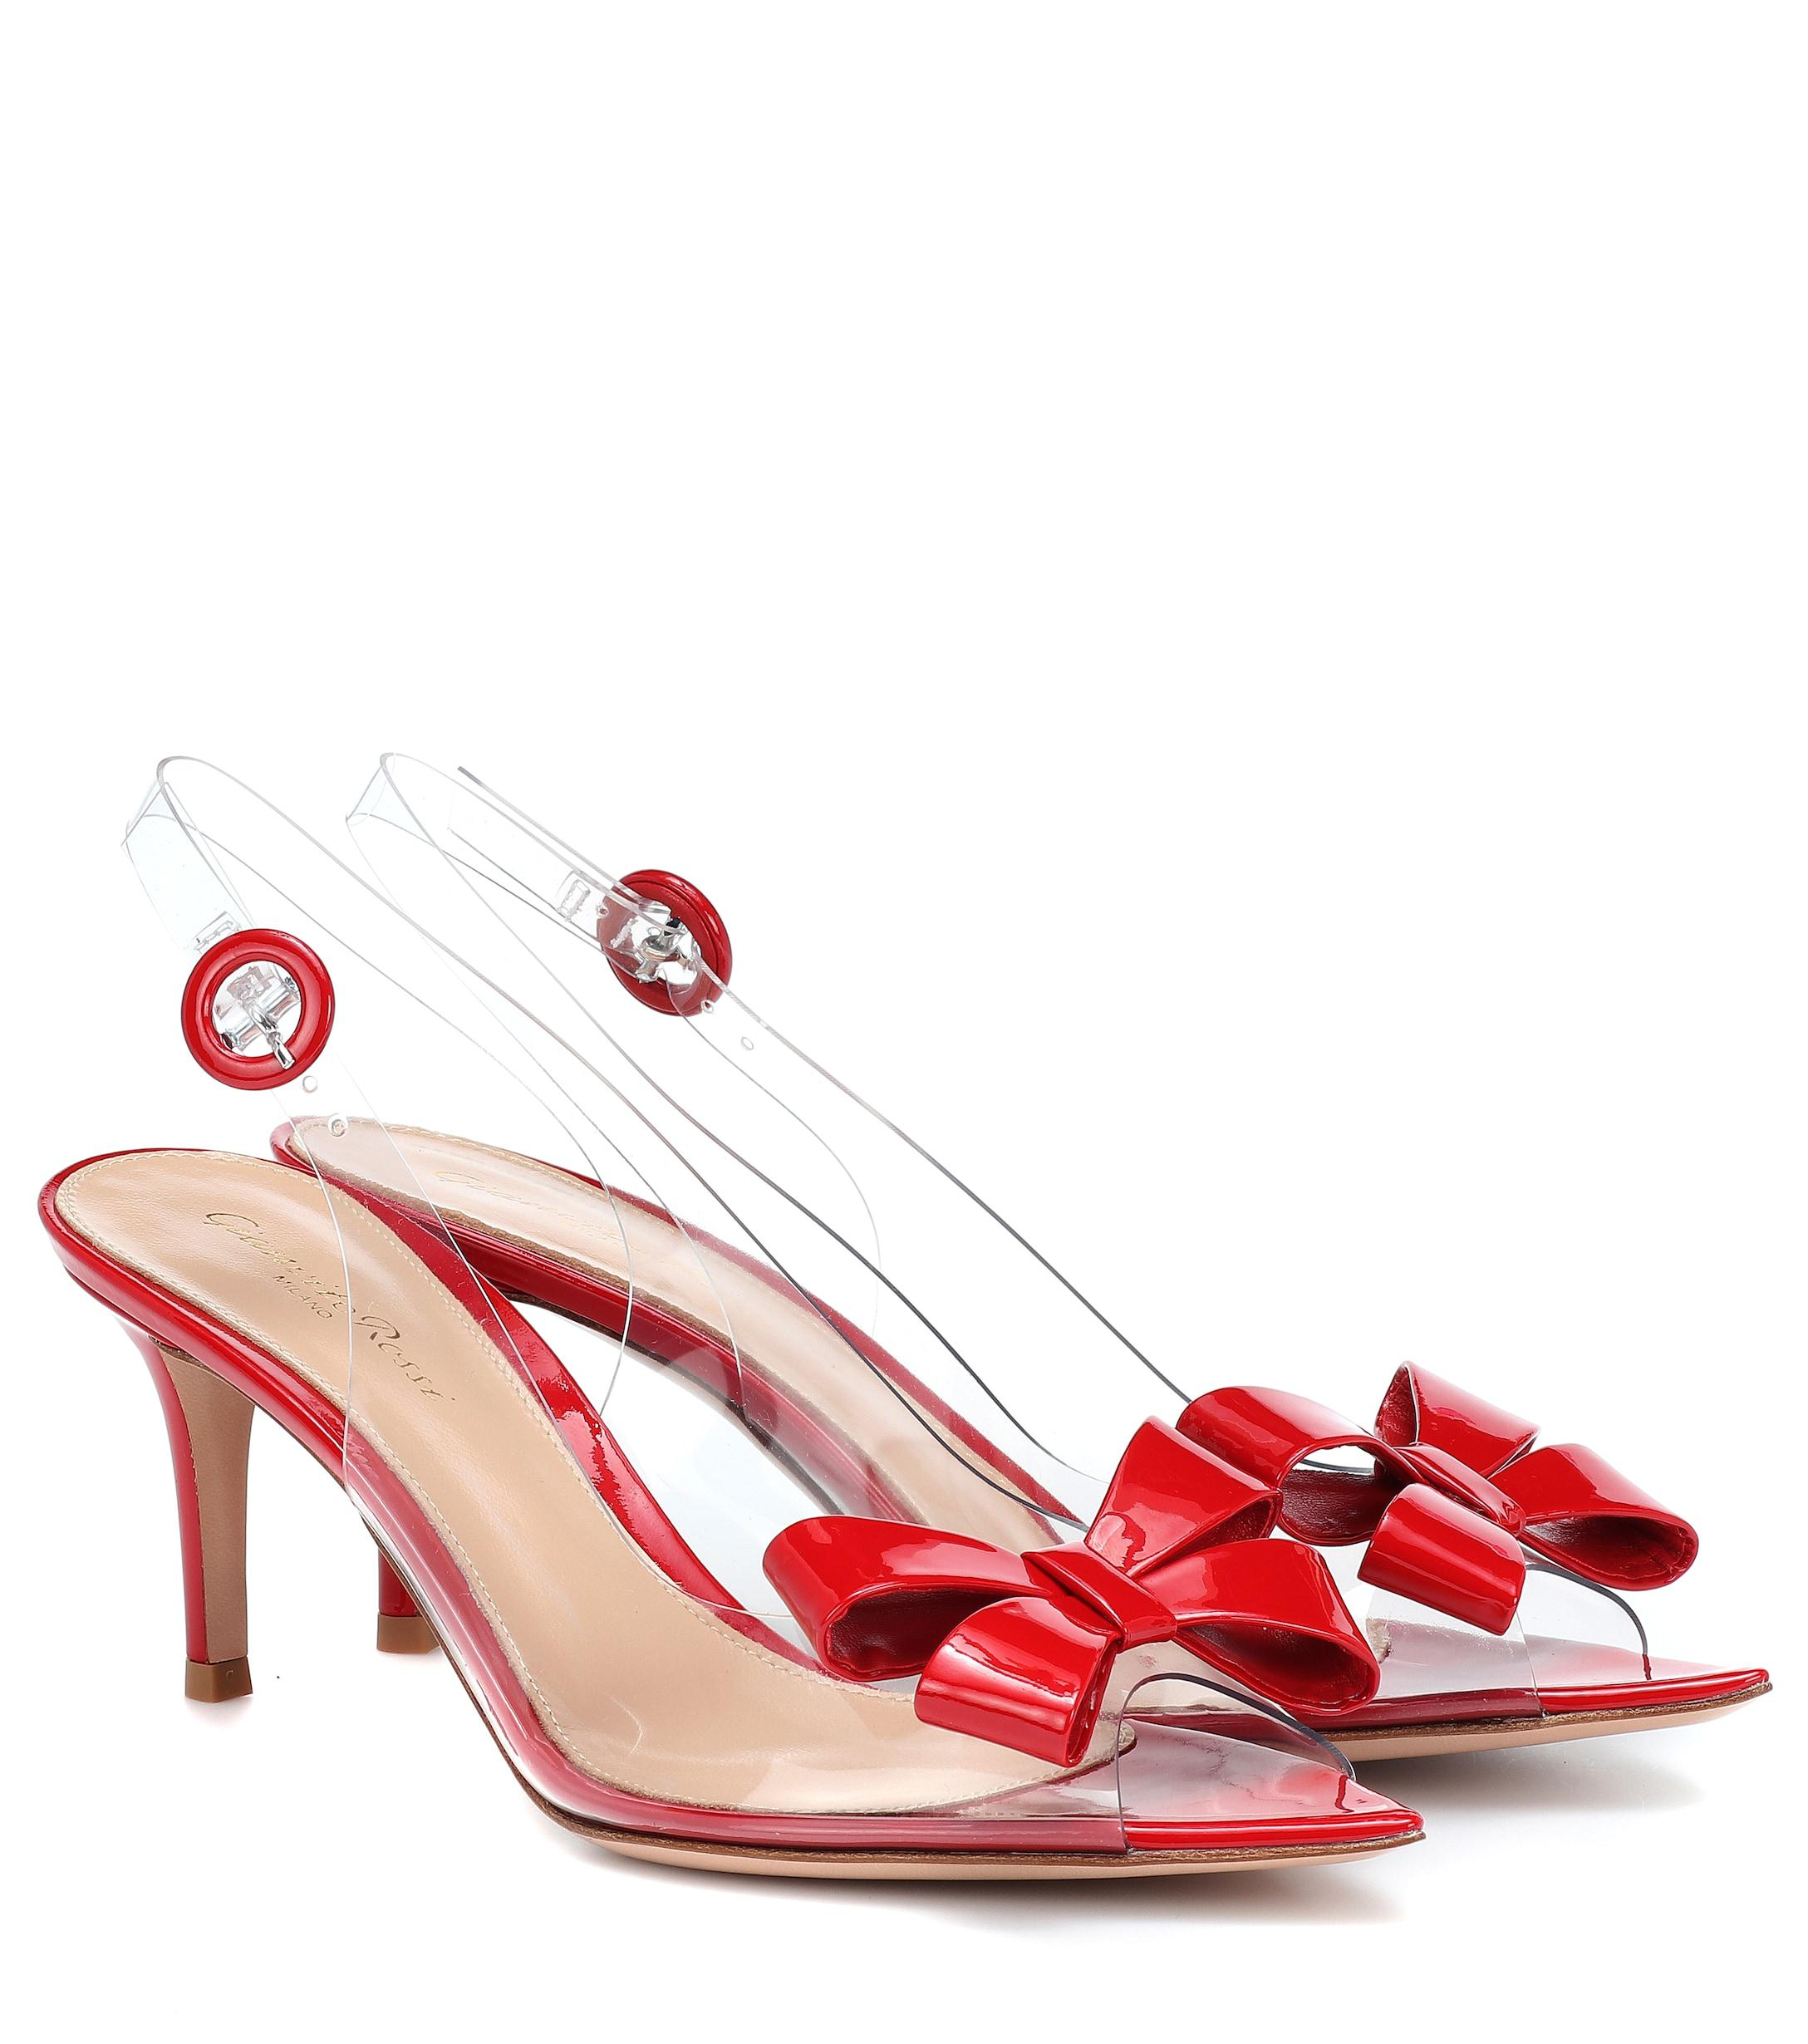 2dde236cdd4 Gianvito Rossi. Women s Red Exclusive To Mytheresa – Plexi 70 Slingback  Sandals